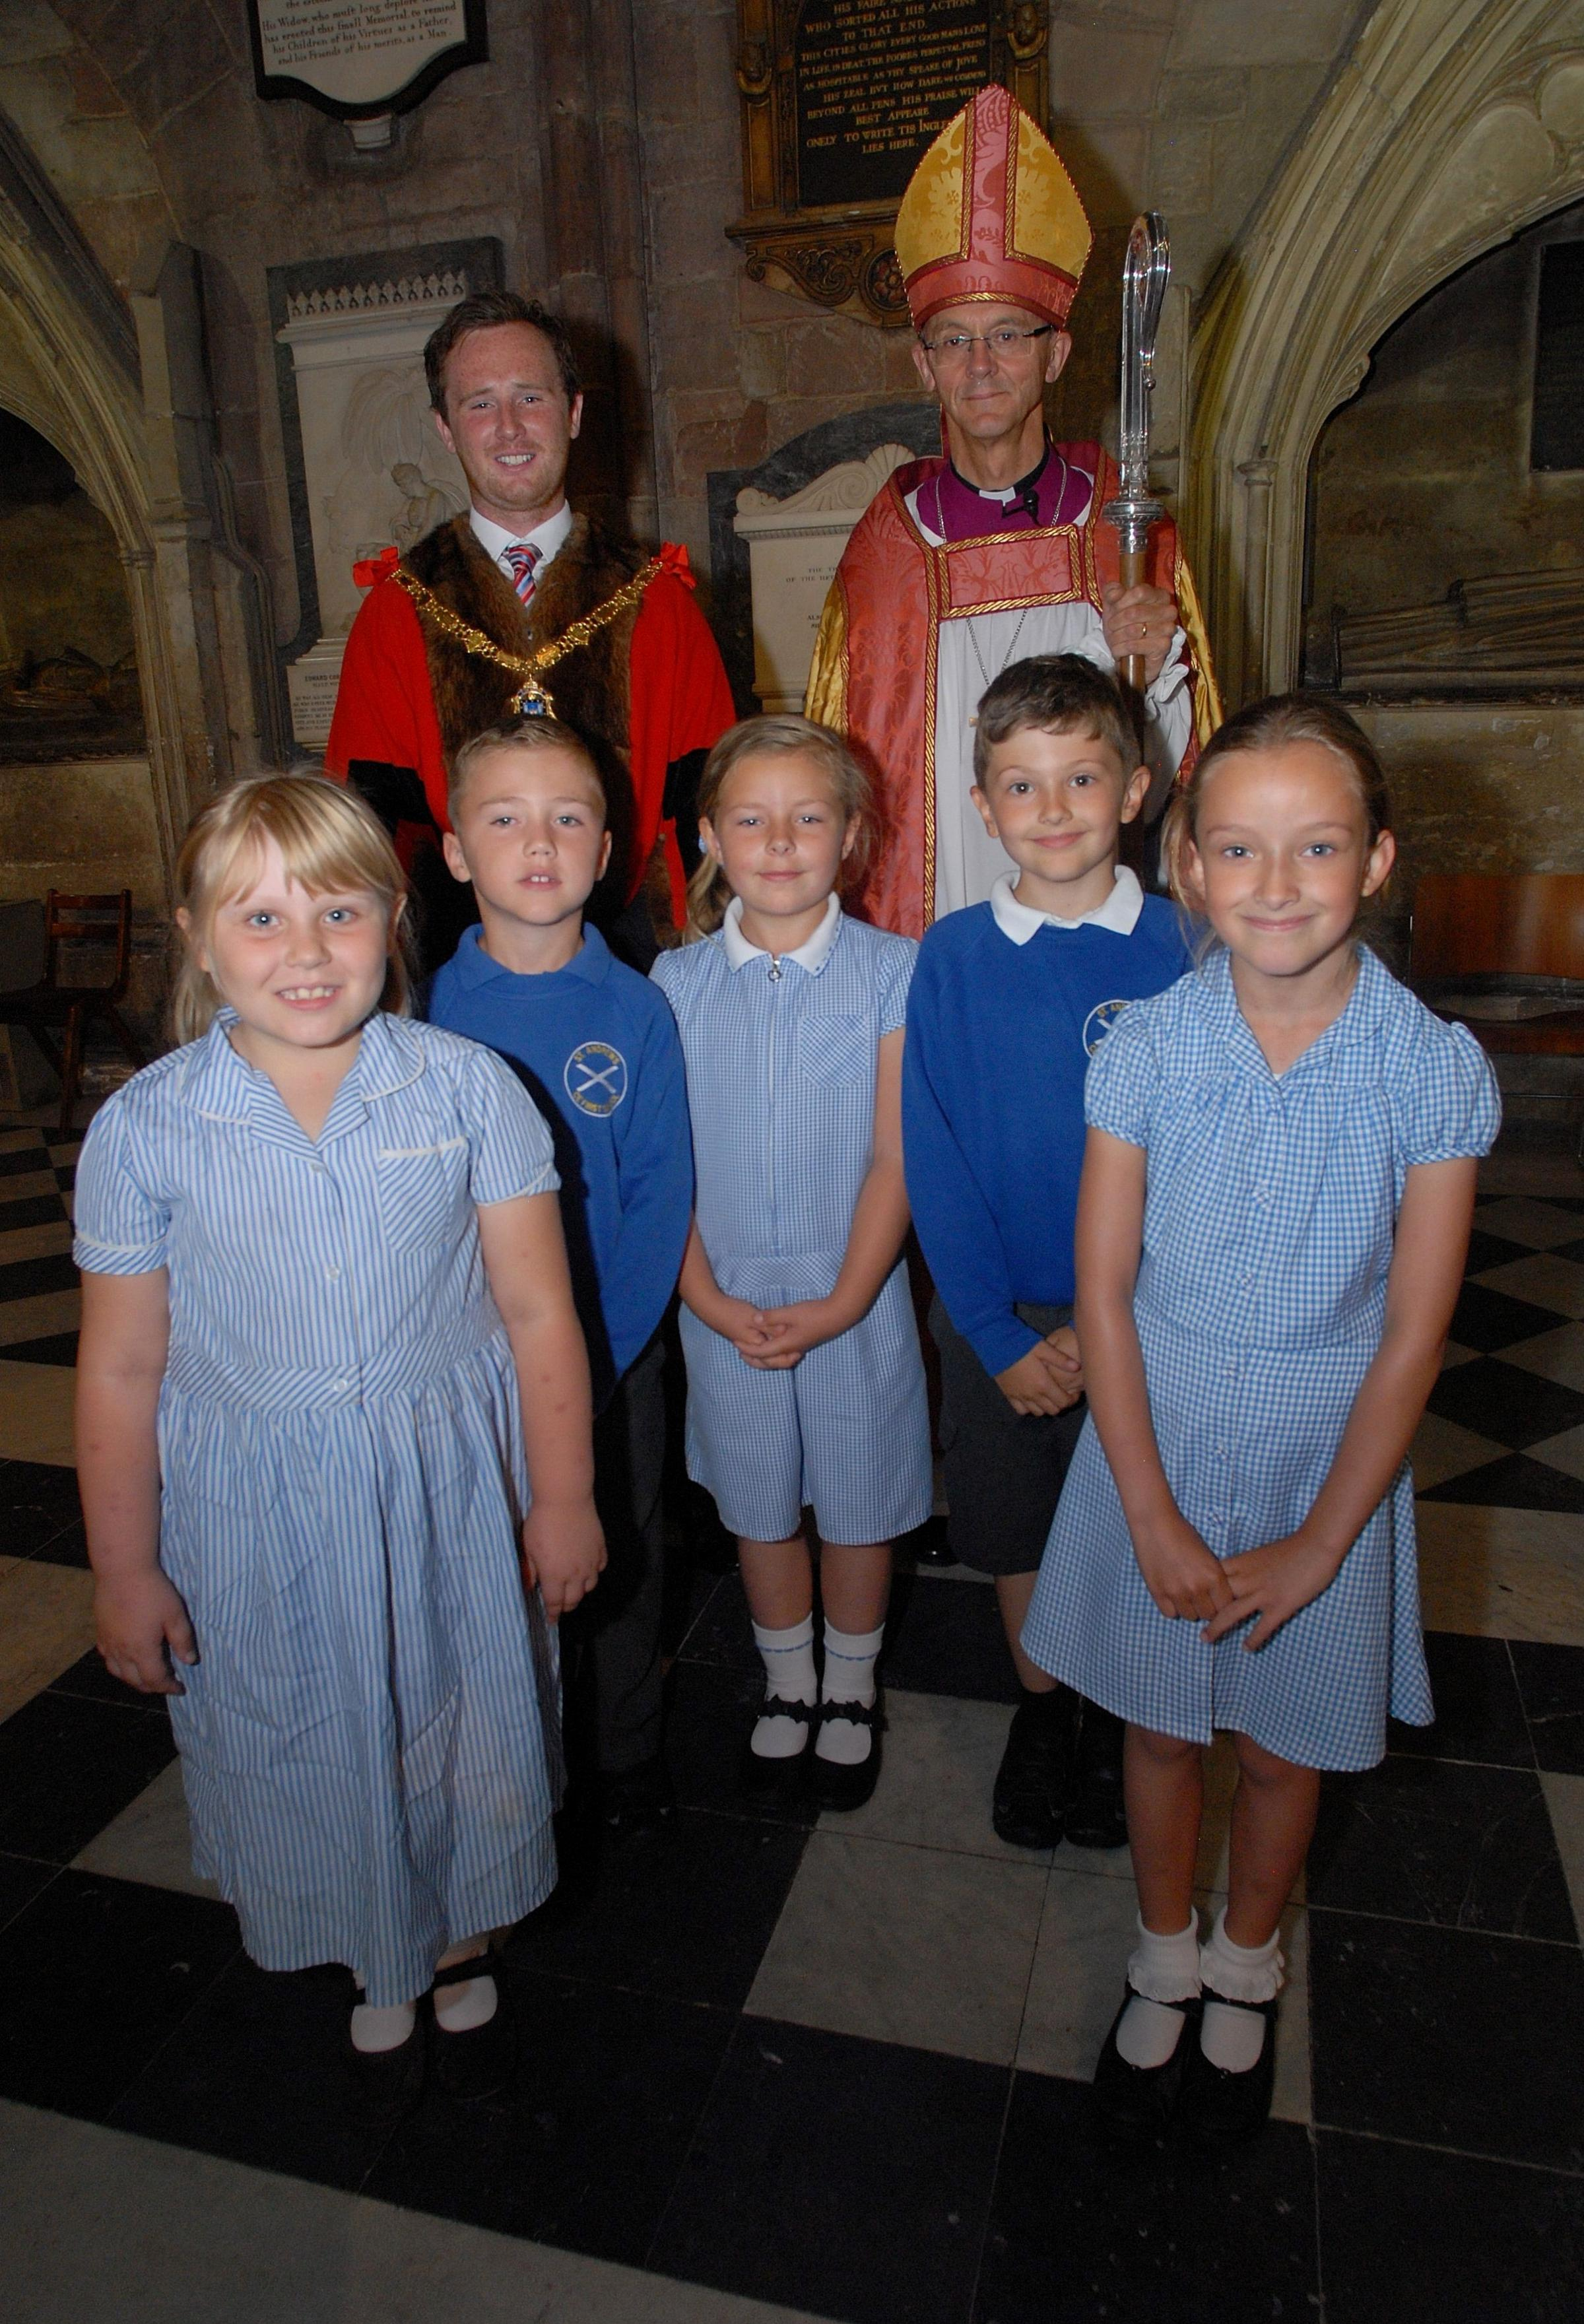 271464101. 02/07/14. Thanksgiving service to mark 300 years of the John Martin Charity at Worcester cathedral. Mayor of Evesham Charlie Homer with Bishop of Worcester Dr John Inge and pupils from St Andrews CE First School in Evesham left to right - Ruby-